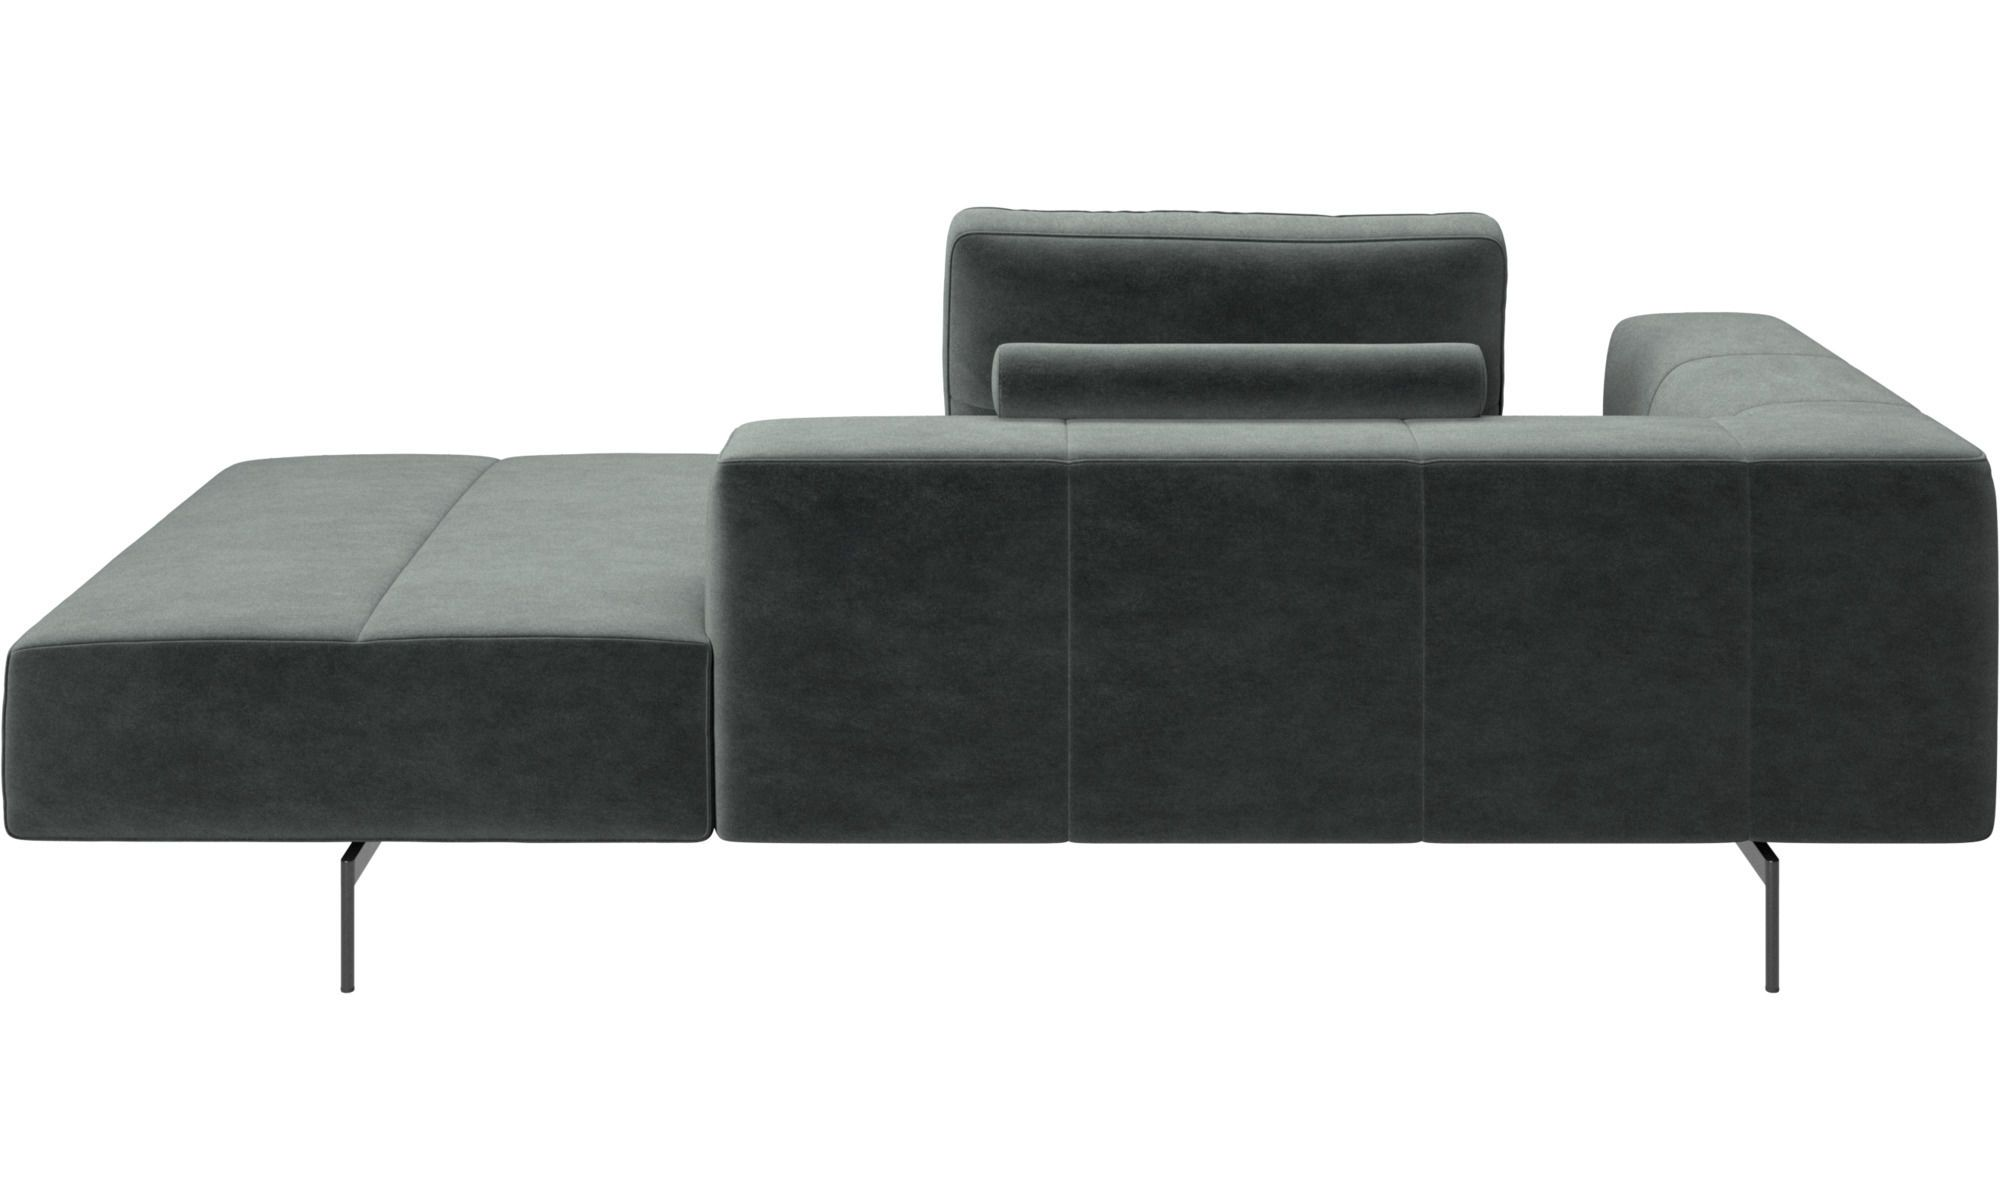 Modular Sofas Amsterdam Iounging Module For Sofa Armrest Left Open End Right Sofa Sectional Couch Chaise Longue